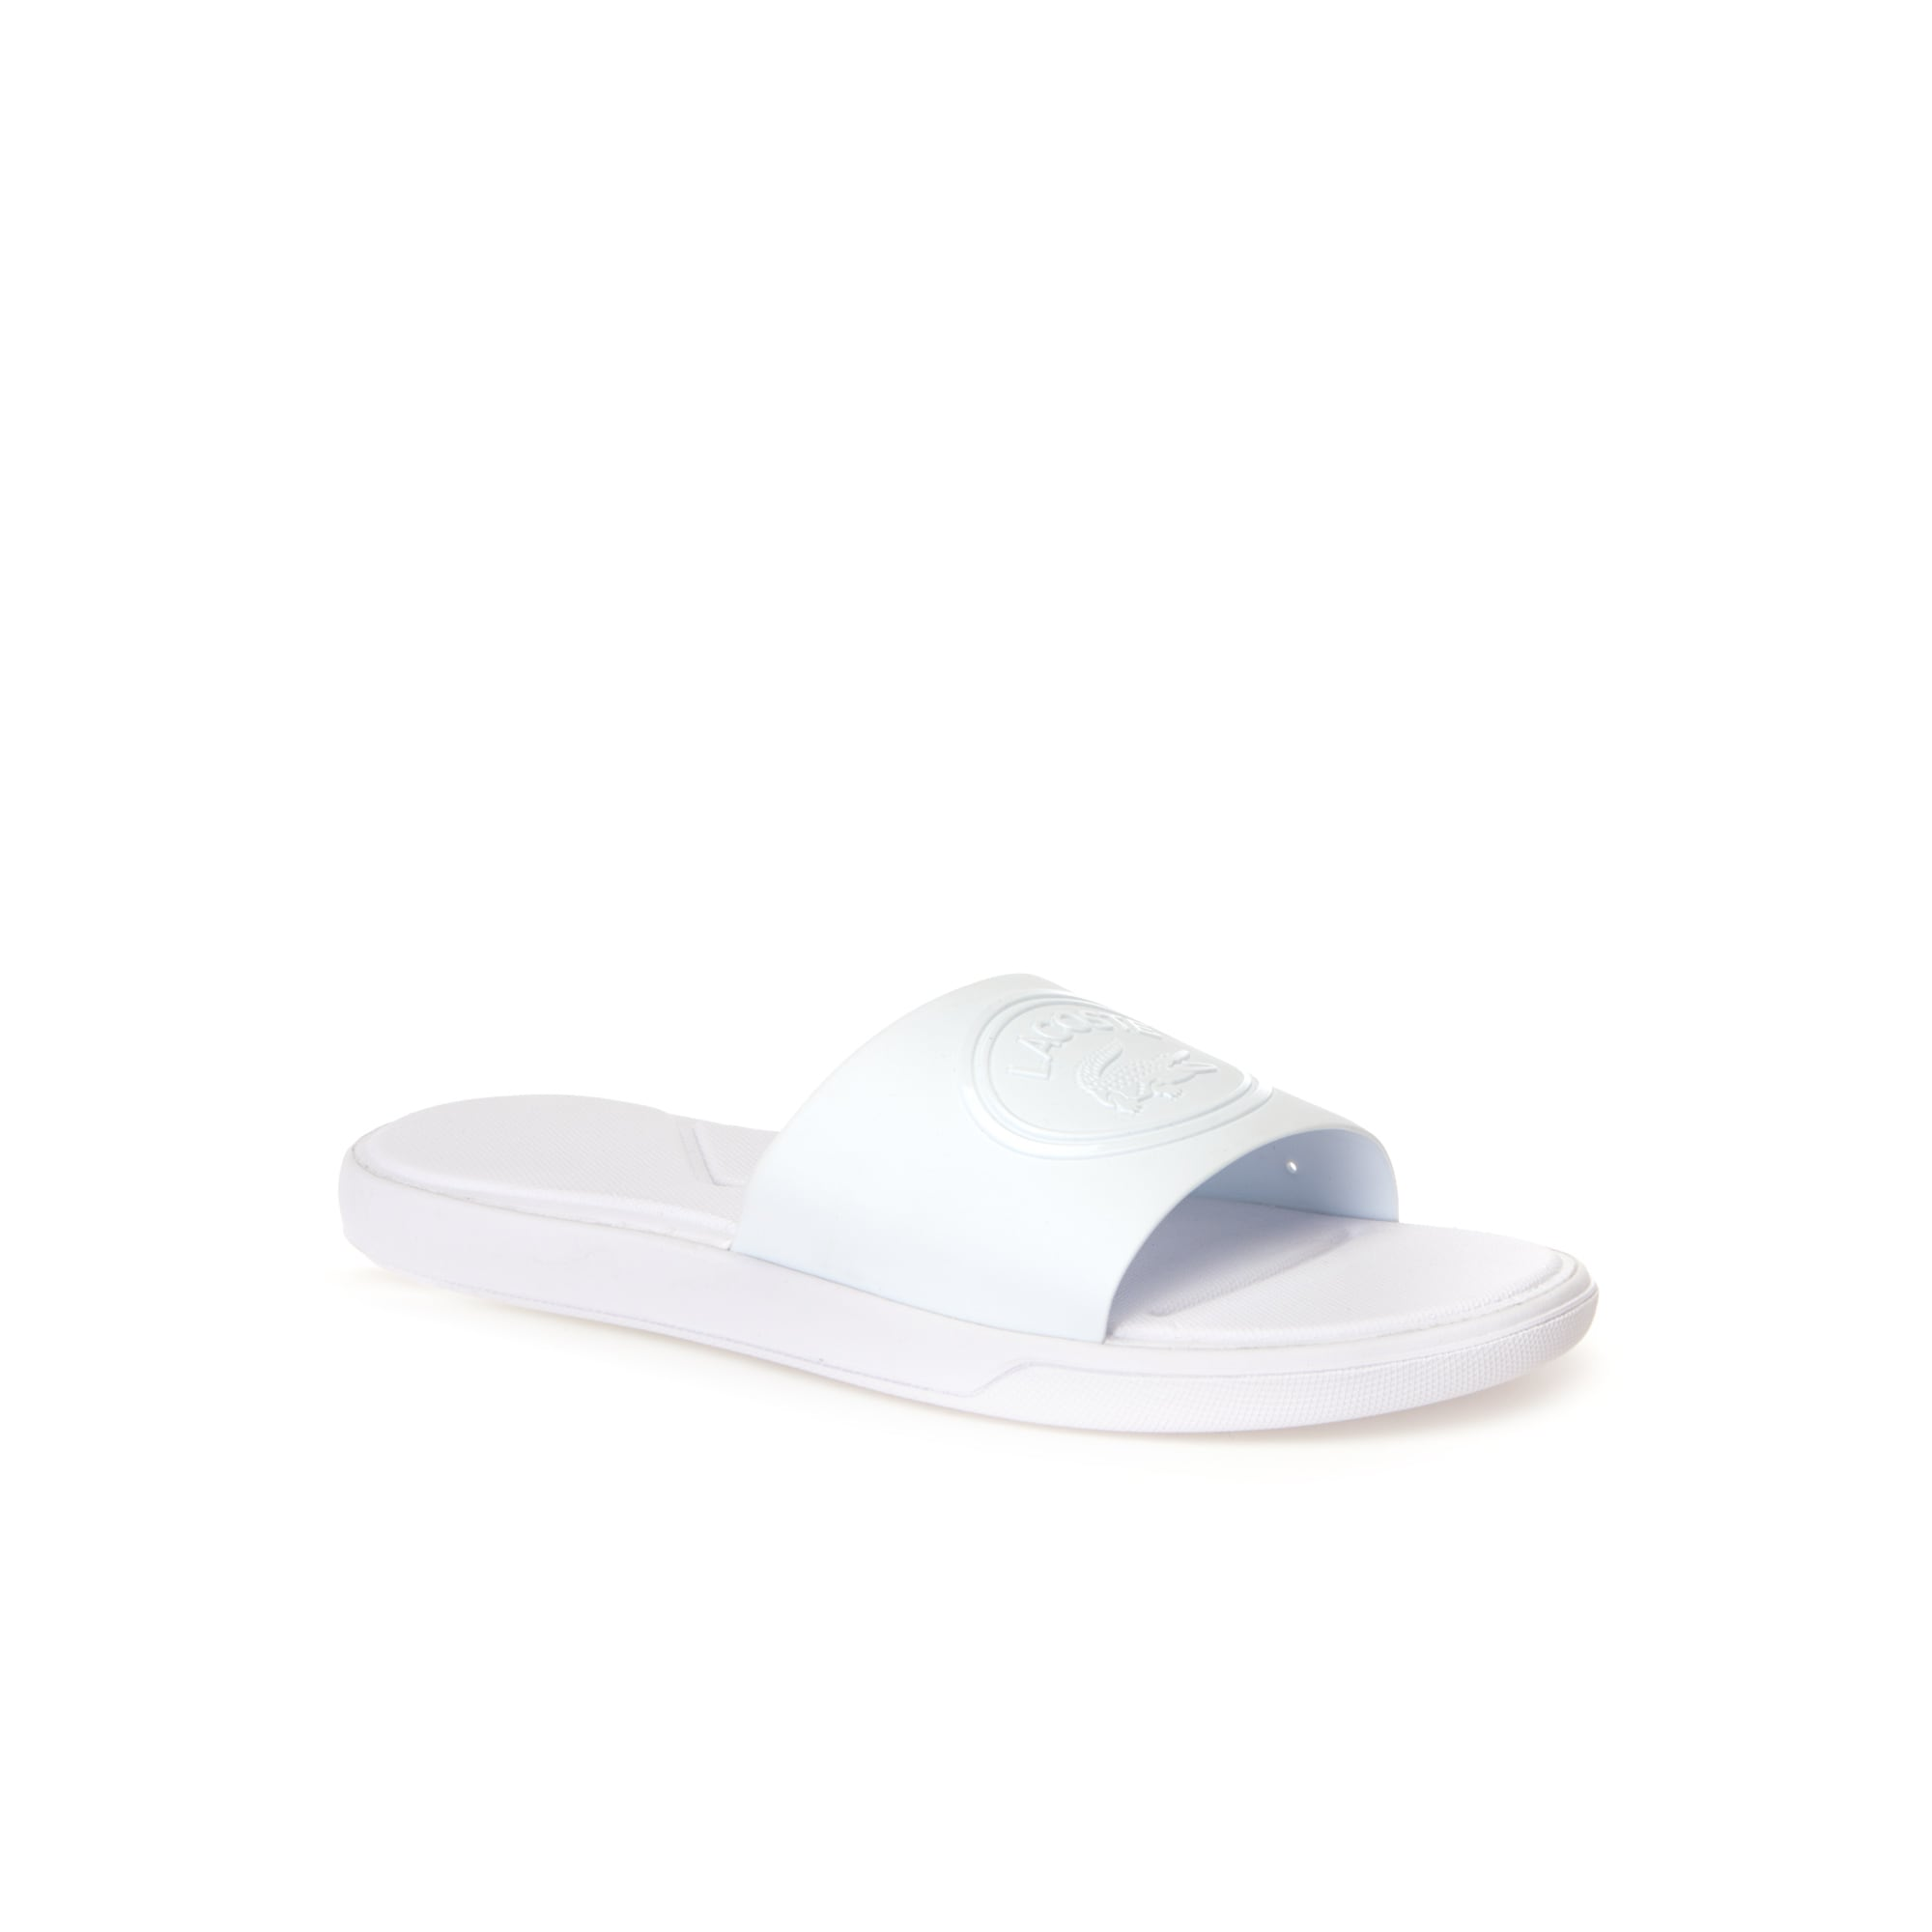 Women's L.30 Synthetic Slides